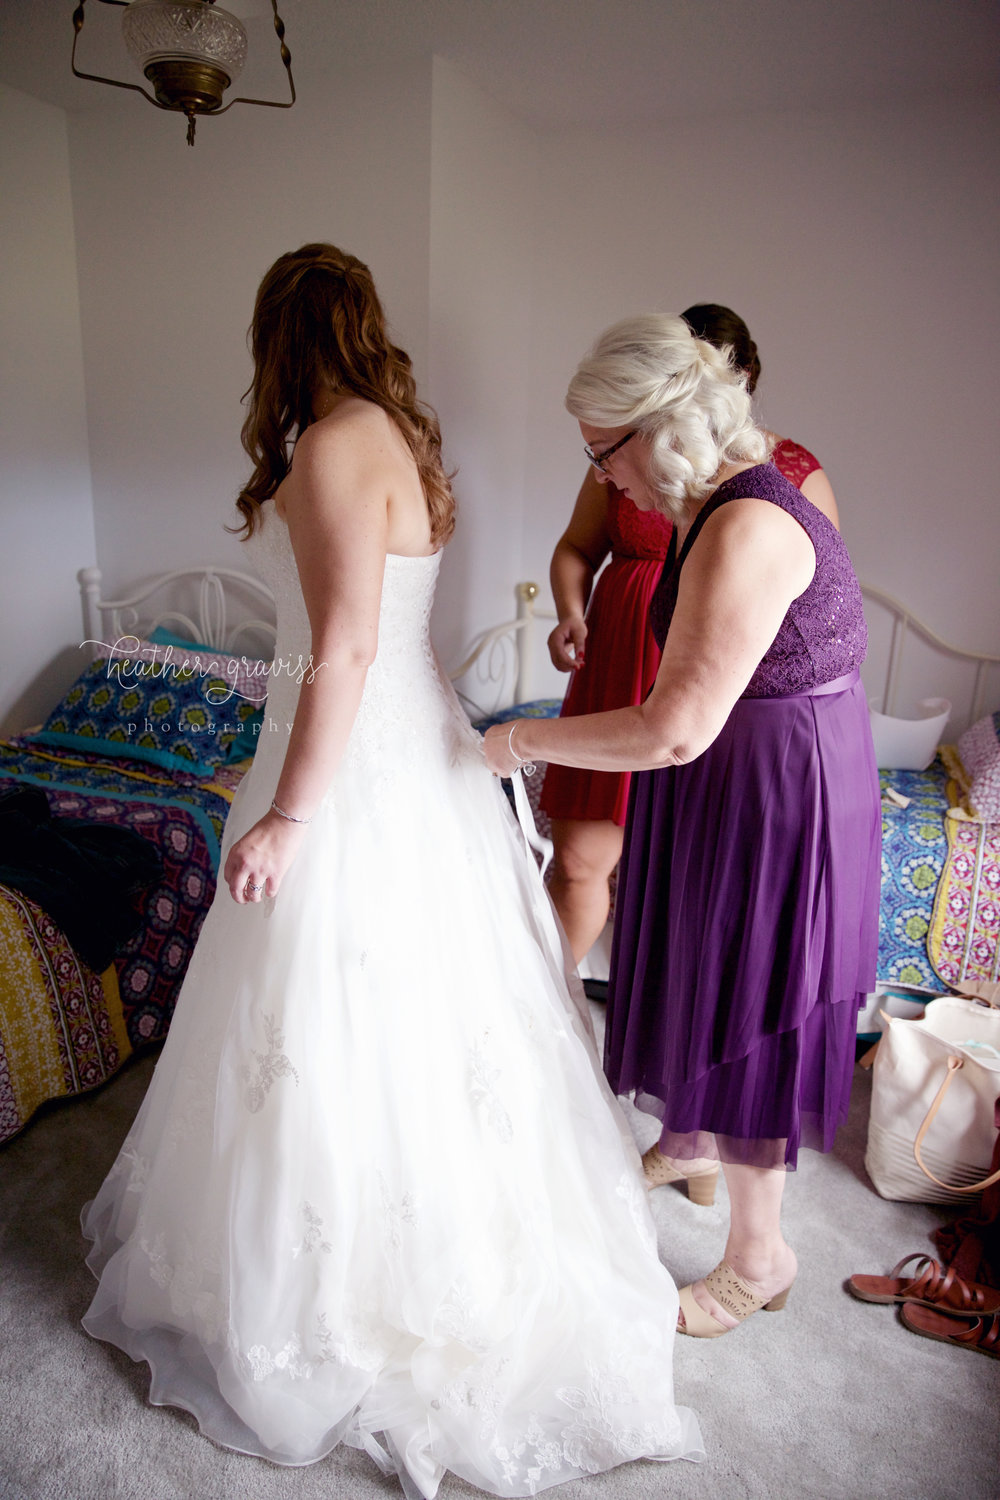 13 mother-of-bride-helping-with-dress.jpg